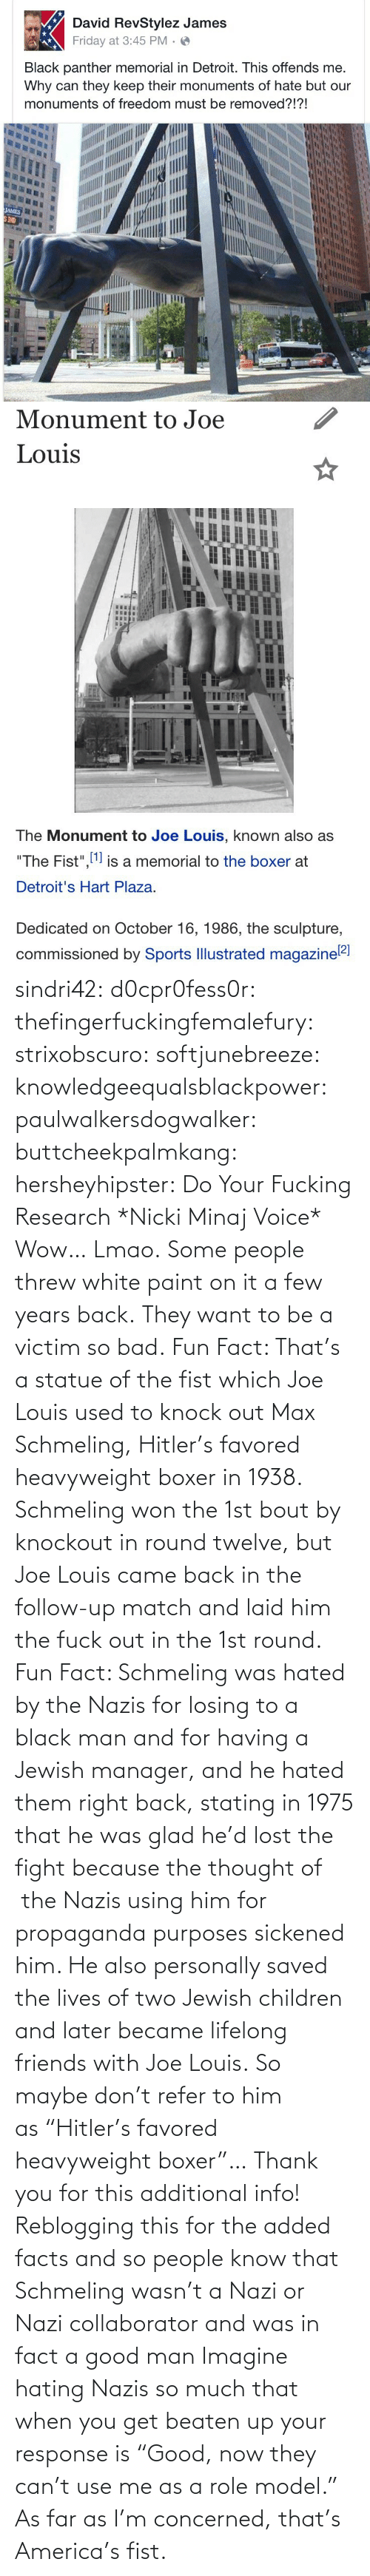 "America: sindri42:  d0cpr0fess0r:  thefingerfuckingfemalefury:  strixobscuro:  softjunebreeze:  knowledgeequalsblackpower:  paulwalkersdogwalker:   buttcheekpalmkang:   hersheyhipster:  Do Your Fucking Research *Nicki Minaj Voice*    Wow… Lmao.   Some people threw white paint on it a few years back.   They want to be a victim so bad.  Fun Fact: That's a statue of the fist which Joe Louis used to knock out Max Schmeling, Hitler's favored heavyweight boxer in 1938. Schmeling won the 1st bout by knockout in round twelve, but Joe Louis came back in the follow-up match and laid him the fuck out in the 1st round.  Fun Fact: Schmeling was hated by the Nazis for losing to a black man and for having a Jewish manager, and he hated them right back, stating in 1975 that he was glad he'd lost the fight because the thought of  the Nazis using him for propaganda purposes sickened him. He also personally saved the lives of two Jewish children and later became lifelong friends with Joe Louis. So maybe don't refer to him as ""Hitler's favored heavyweight boxer""…  Thank you for this additional info! Reblogging this for the added facts and so people know that Schmeling wasn't a Nazi or Nazi collaborator and was in fact a good man   Imagine hating Nazis so much that when you get beaten up your response is ""Good, now they can't use me as a role model.""  As far as I'm concerned, that's America's fist."